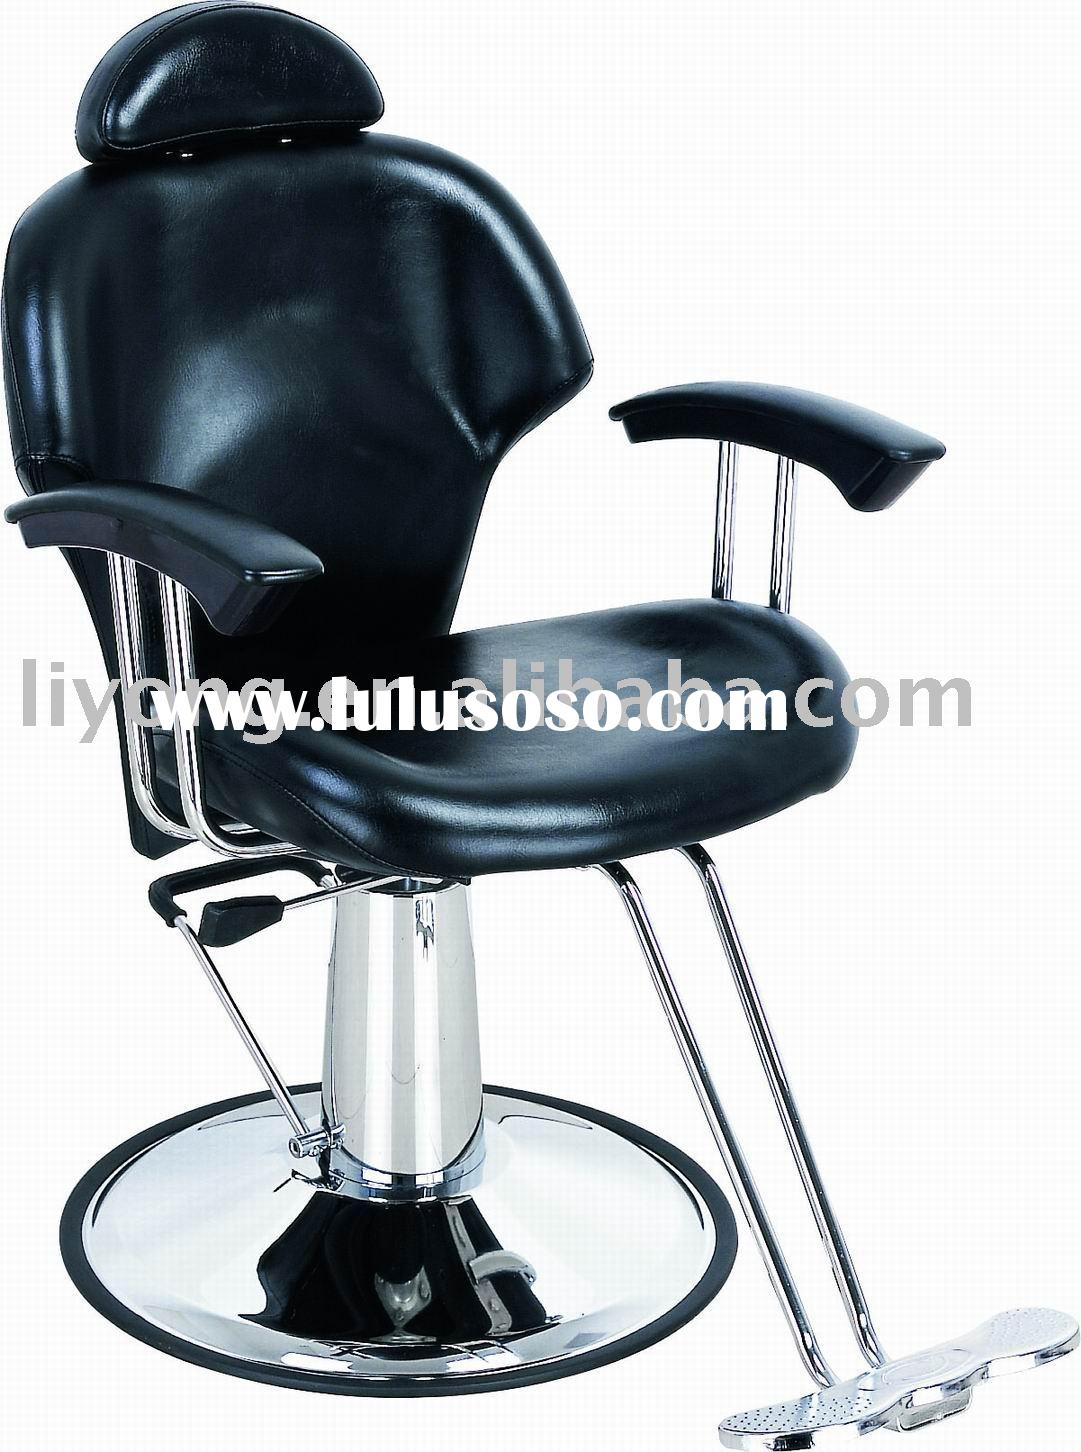 hydraulic chair for sale ballard designs upholstered dining chairs all purpose salon a02b price china